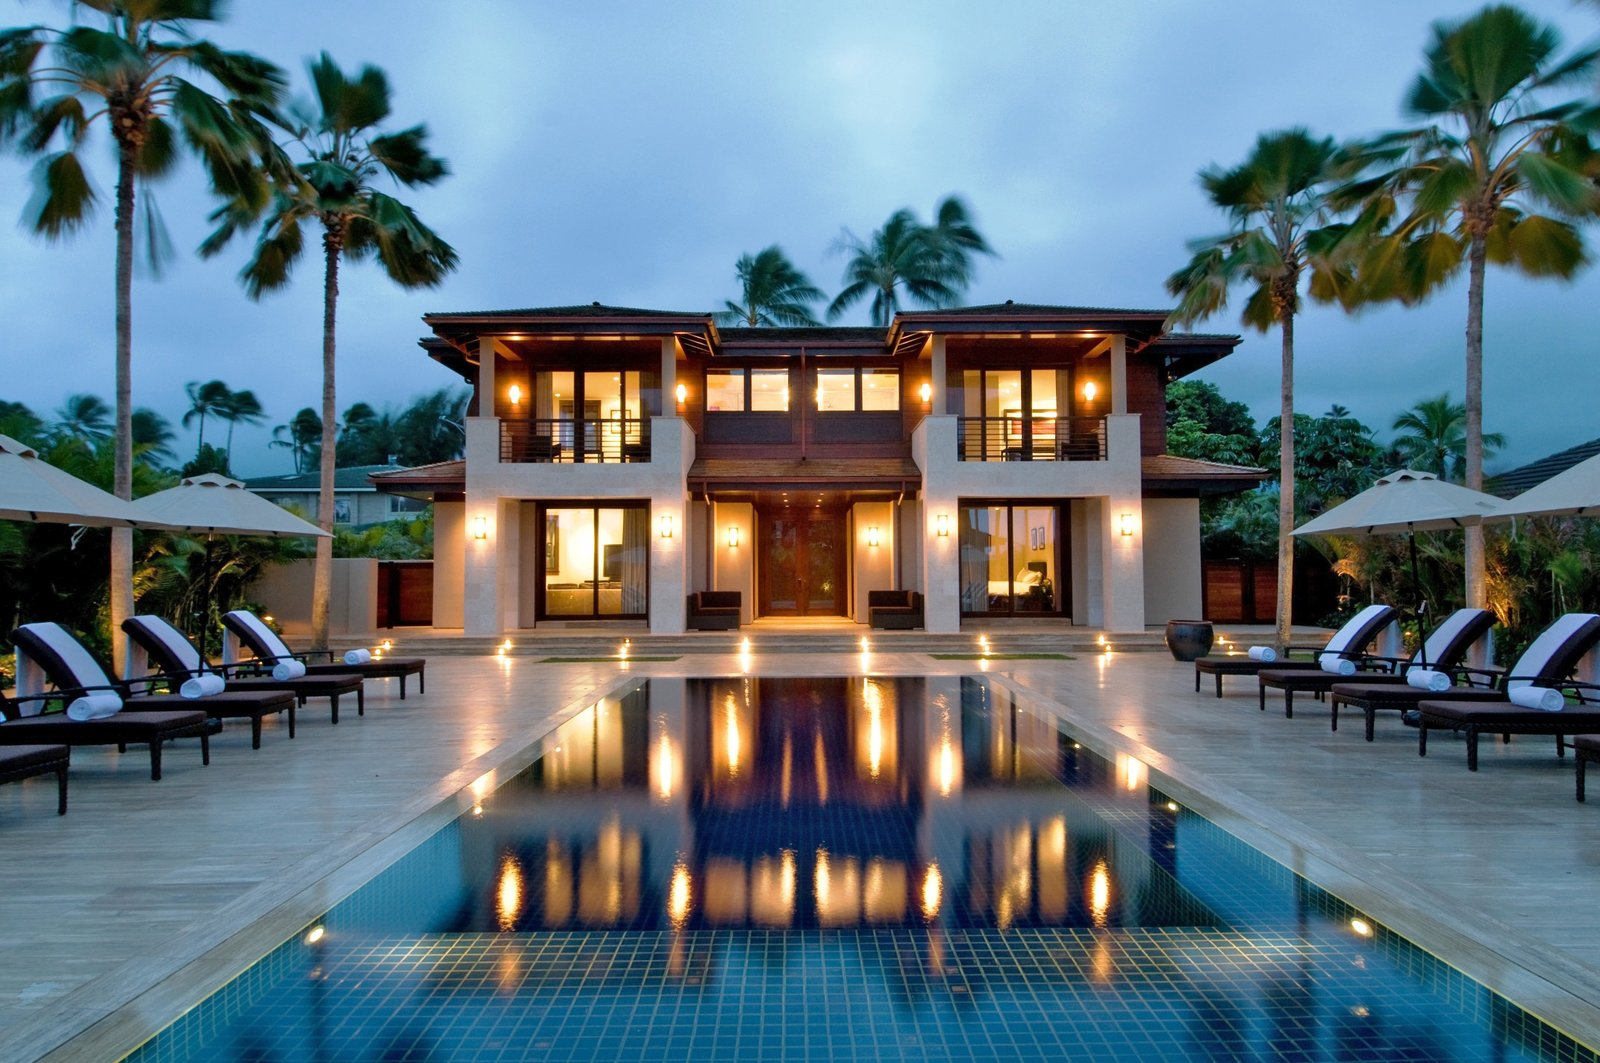 The 7 bedroom 7 5 bath royal beach estate is one of the newest most